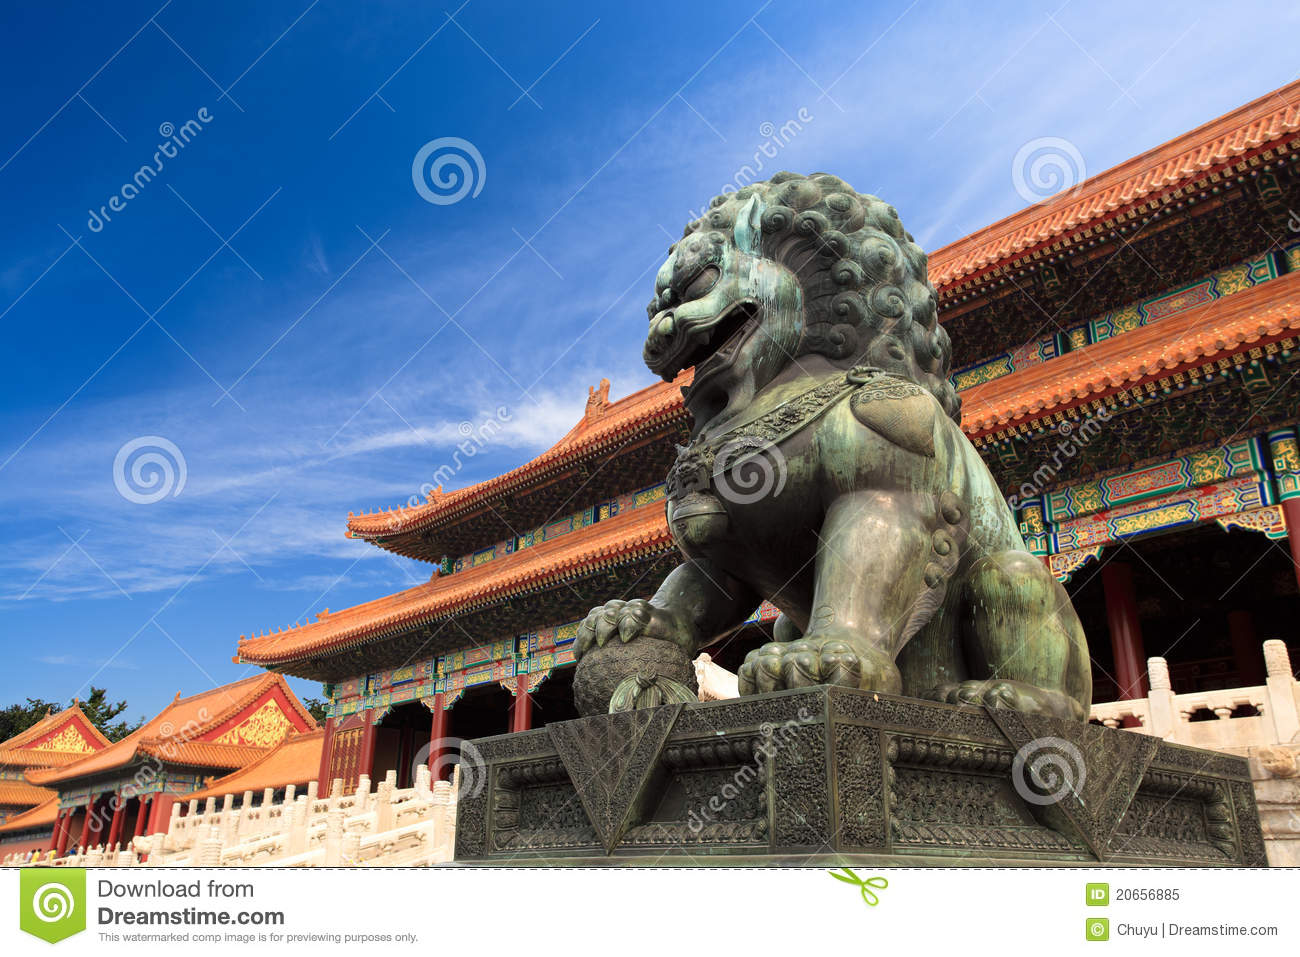 Download The forbidden city, China stock image. Image of palace - 20656885